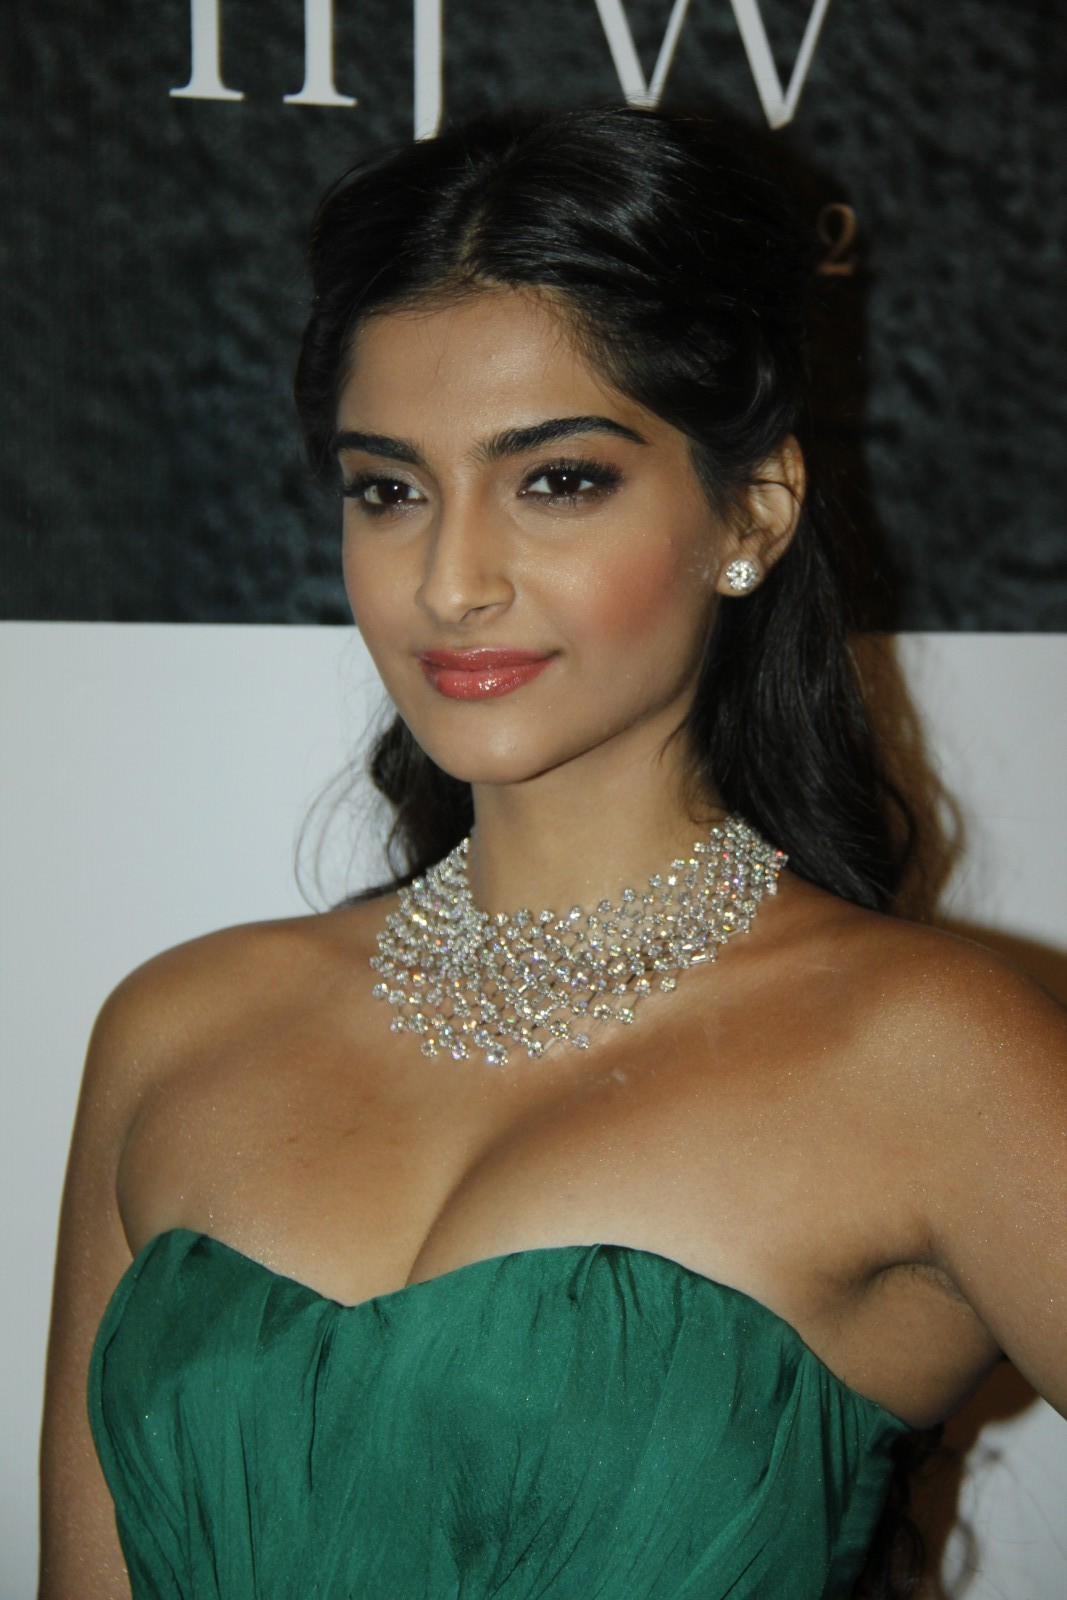 High Quality Bollywood Celebrity Pictures Sonam Kapoor -6019